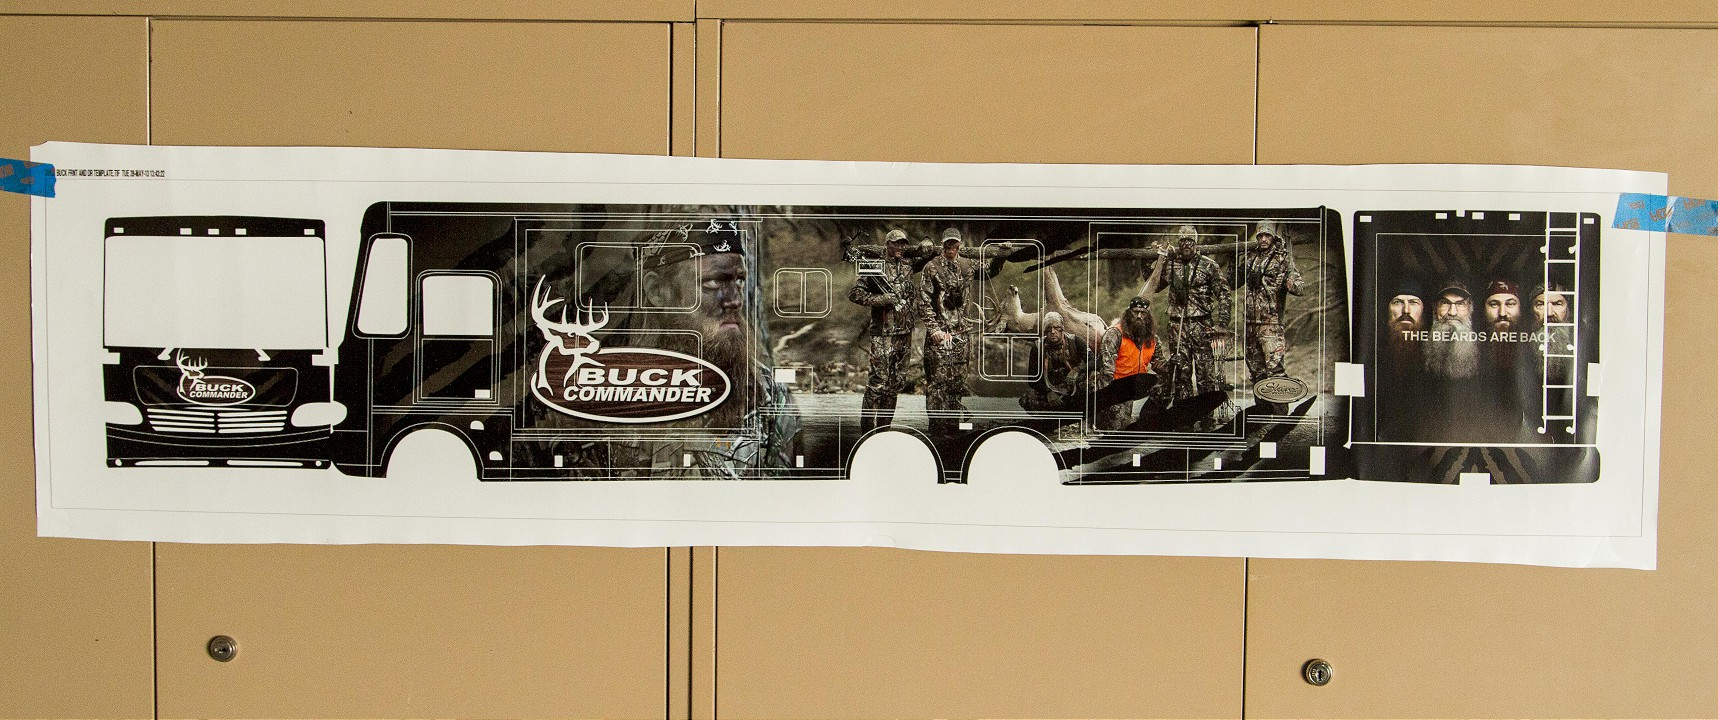 Duck Commander Custom RV Wrap Design Phase - Front & Side Design/Layout